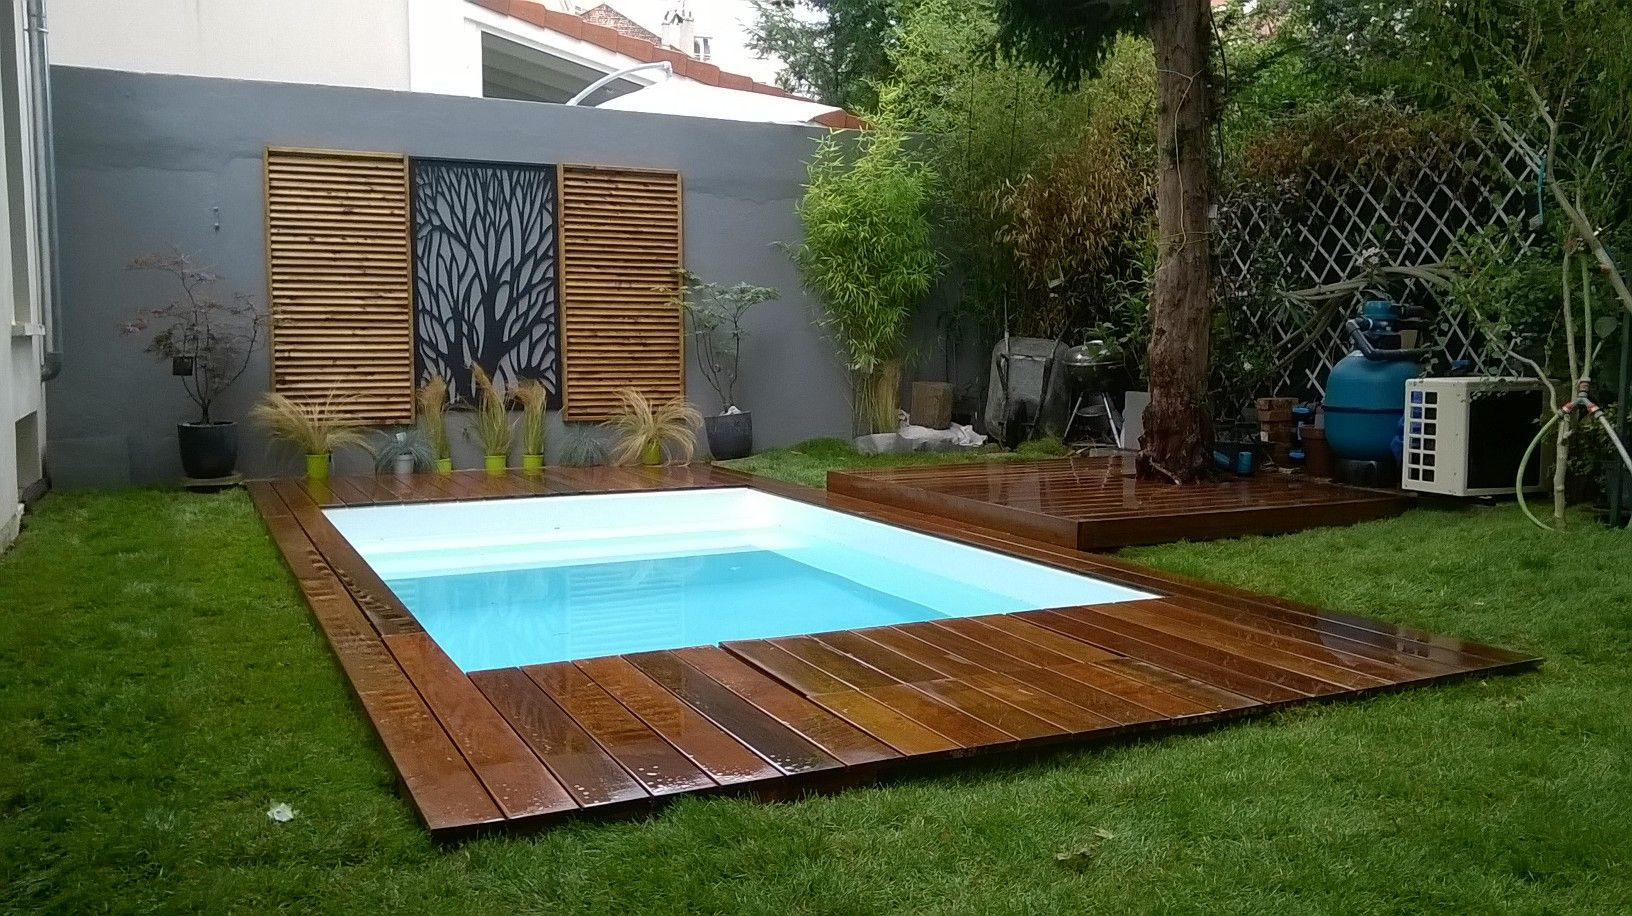 cr ation sur mesure d 39 une margelle terrasse de piscine. Black Bedroom Furniture Sets. Home Design Ideas